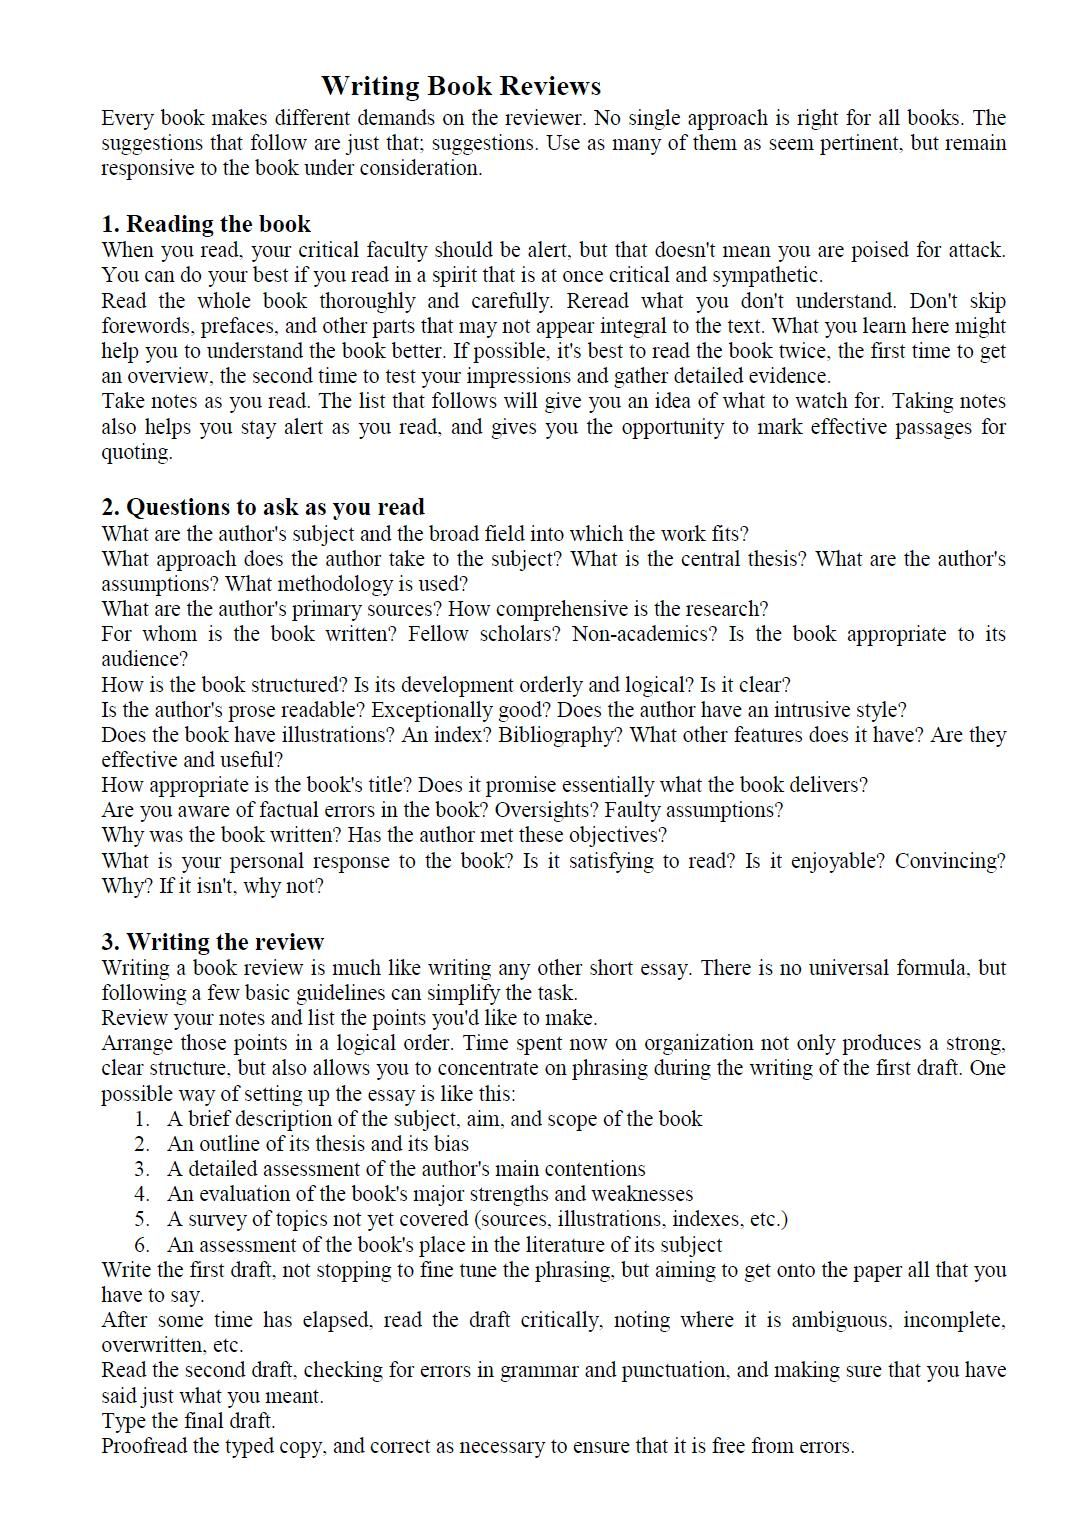 example of a critical book review essay